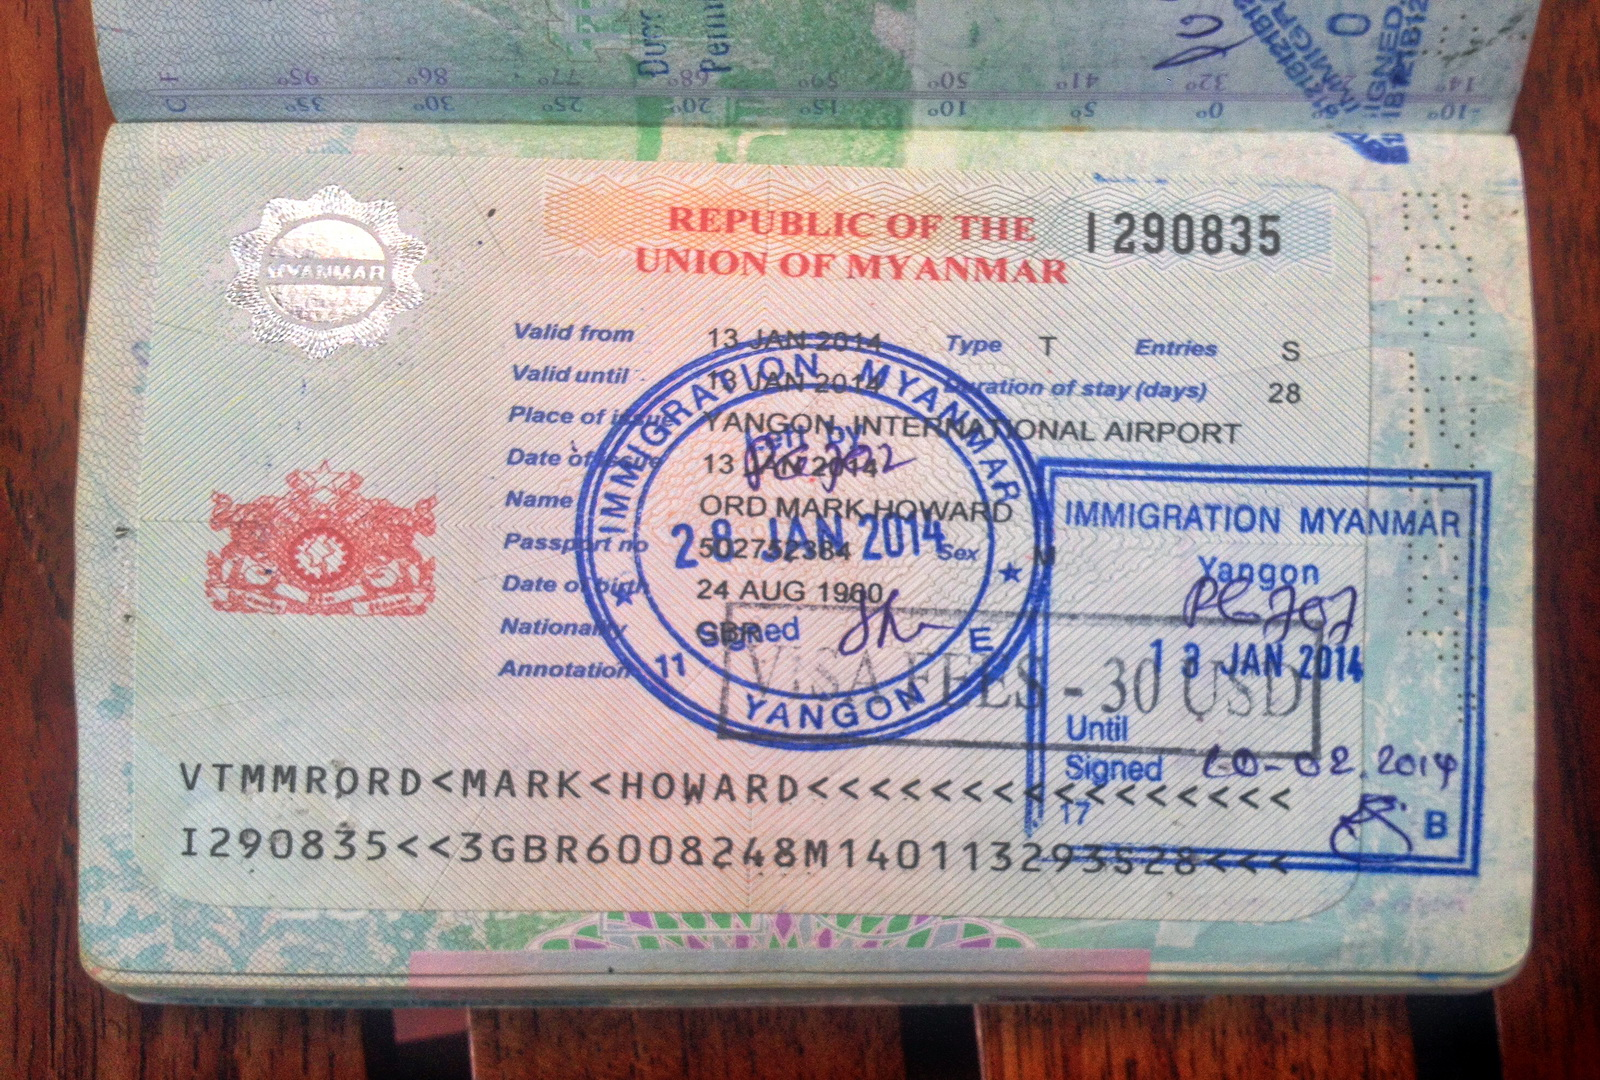 Visa as recieved from the embassy